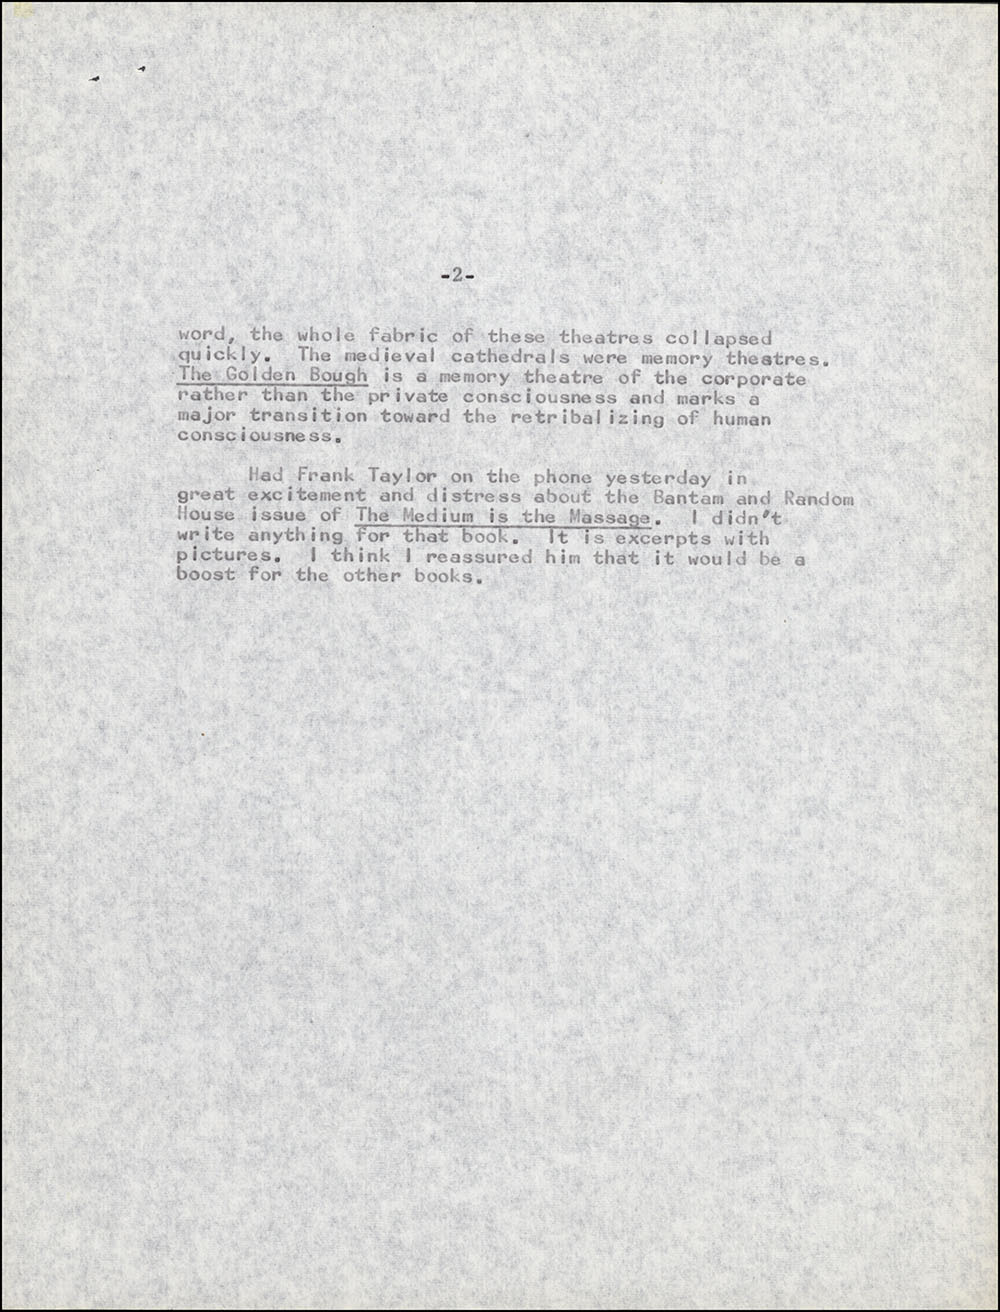 Letter dated December 1, 1966 to William Jovanovich, page 2